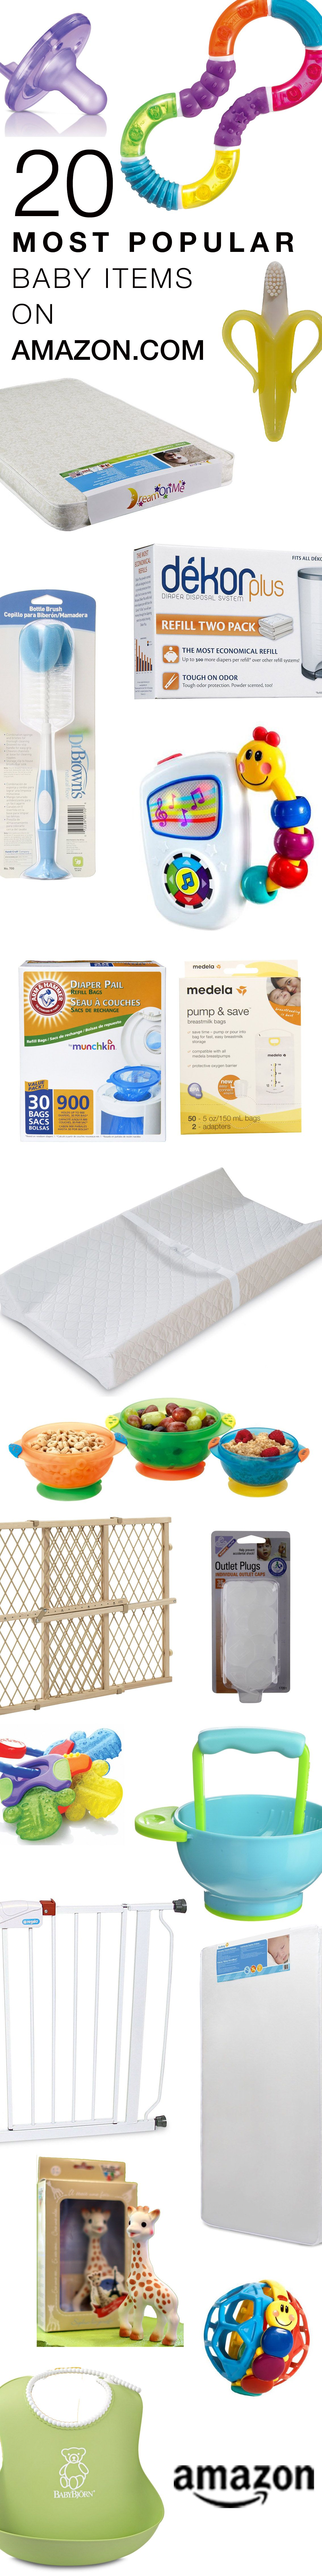 20 most popular baby items on amazon plenty of baby shower 20 most popular baby items on amazon plenty of baby shower gift ideas gender neutral nursery items new and educational baby toys and more ideas negle Choice Image